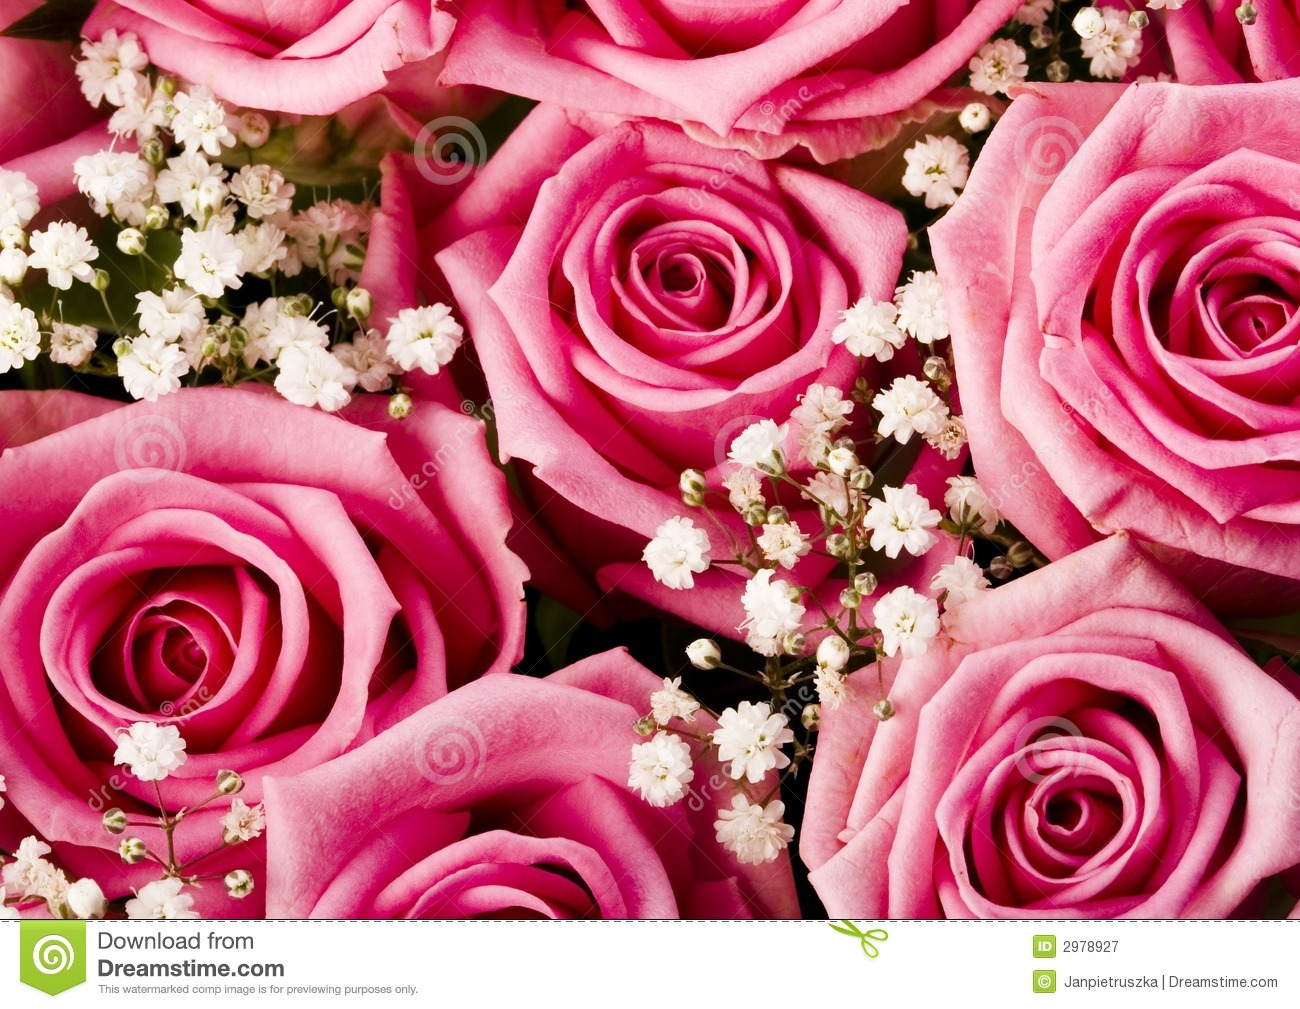 Beautiful flowers stock image image of emotion birthday 2978927 beautiful flowers izmirmasajfo